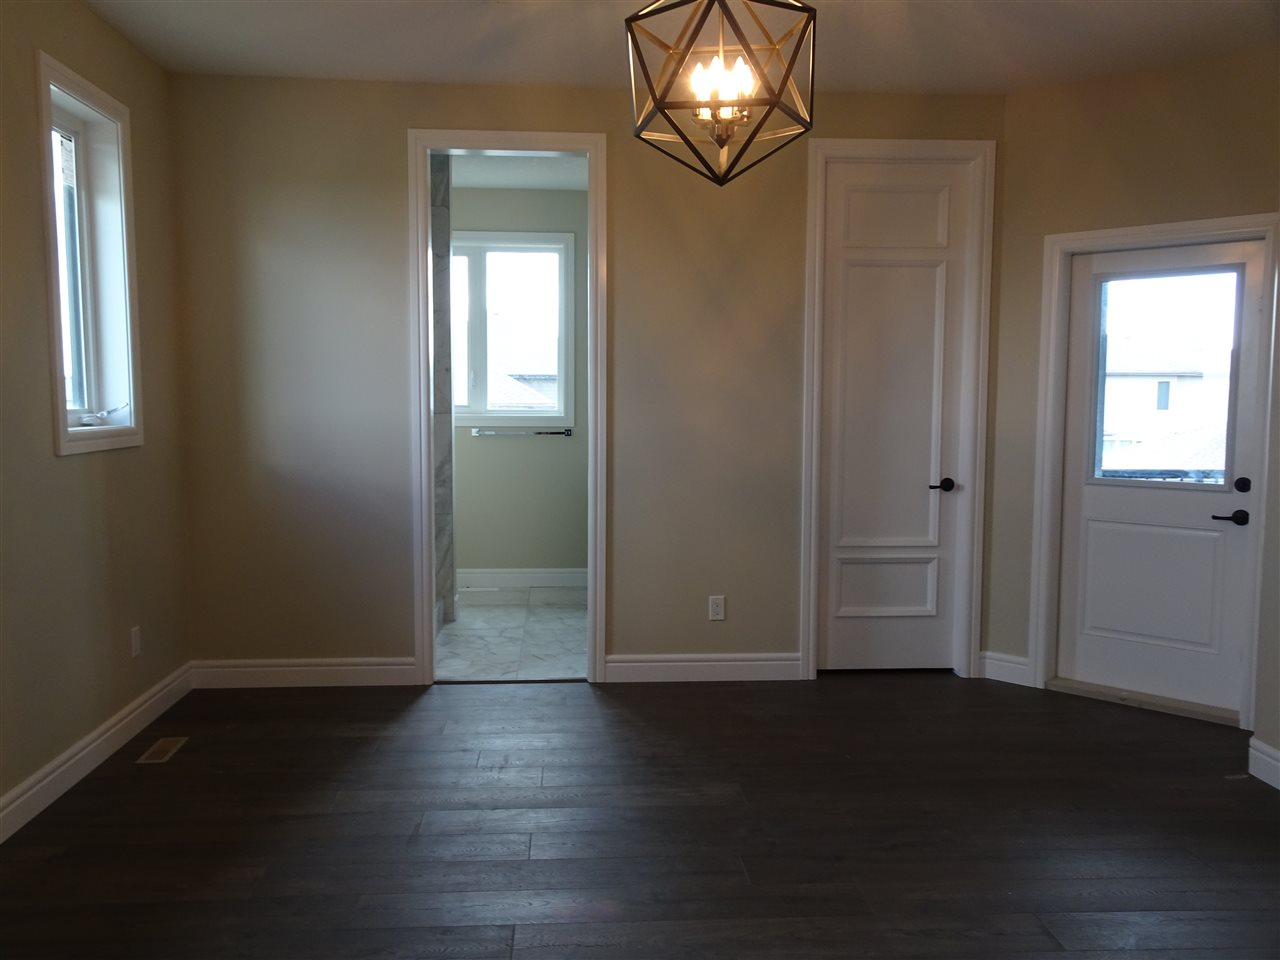 Photo 8: 7235 MAY Road in Edmonton: Zone 14 House Half Duplex for sale : MLS® # E4068494